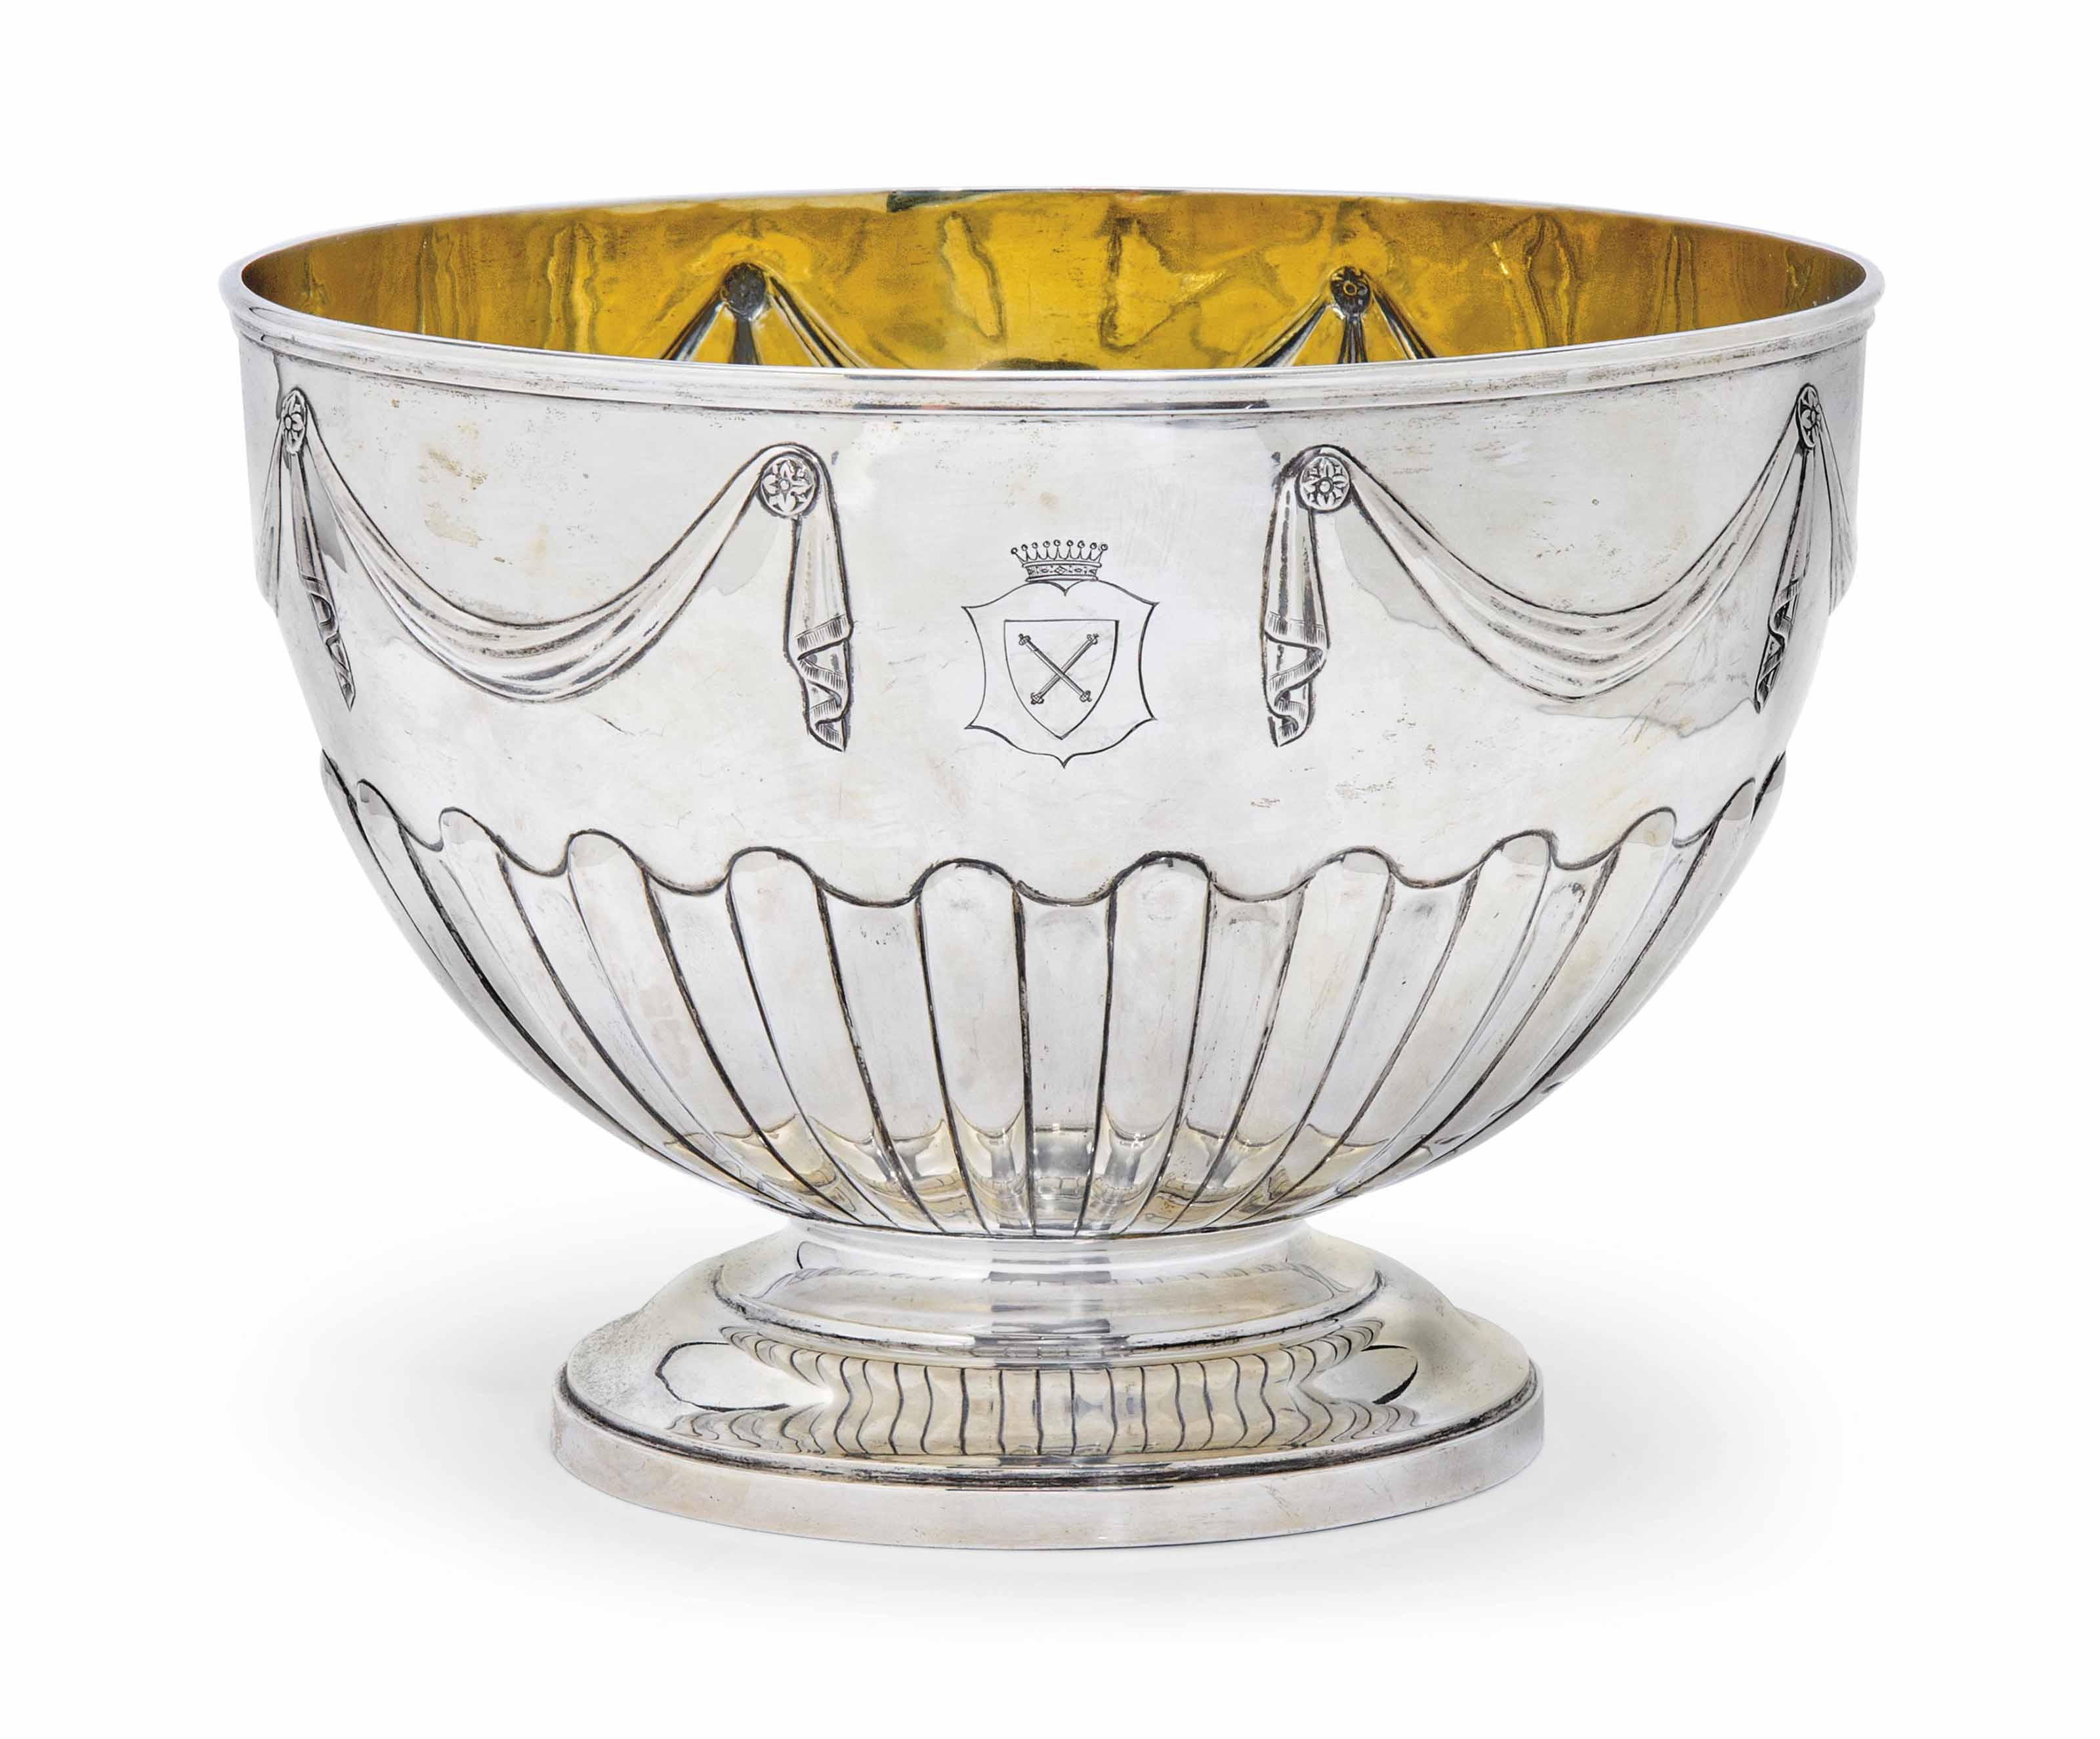 A VICTORIAN SILVER PUNCH OR RO